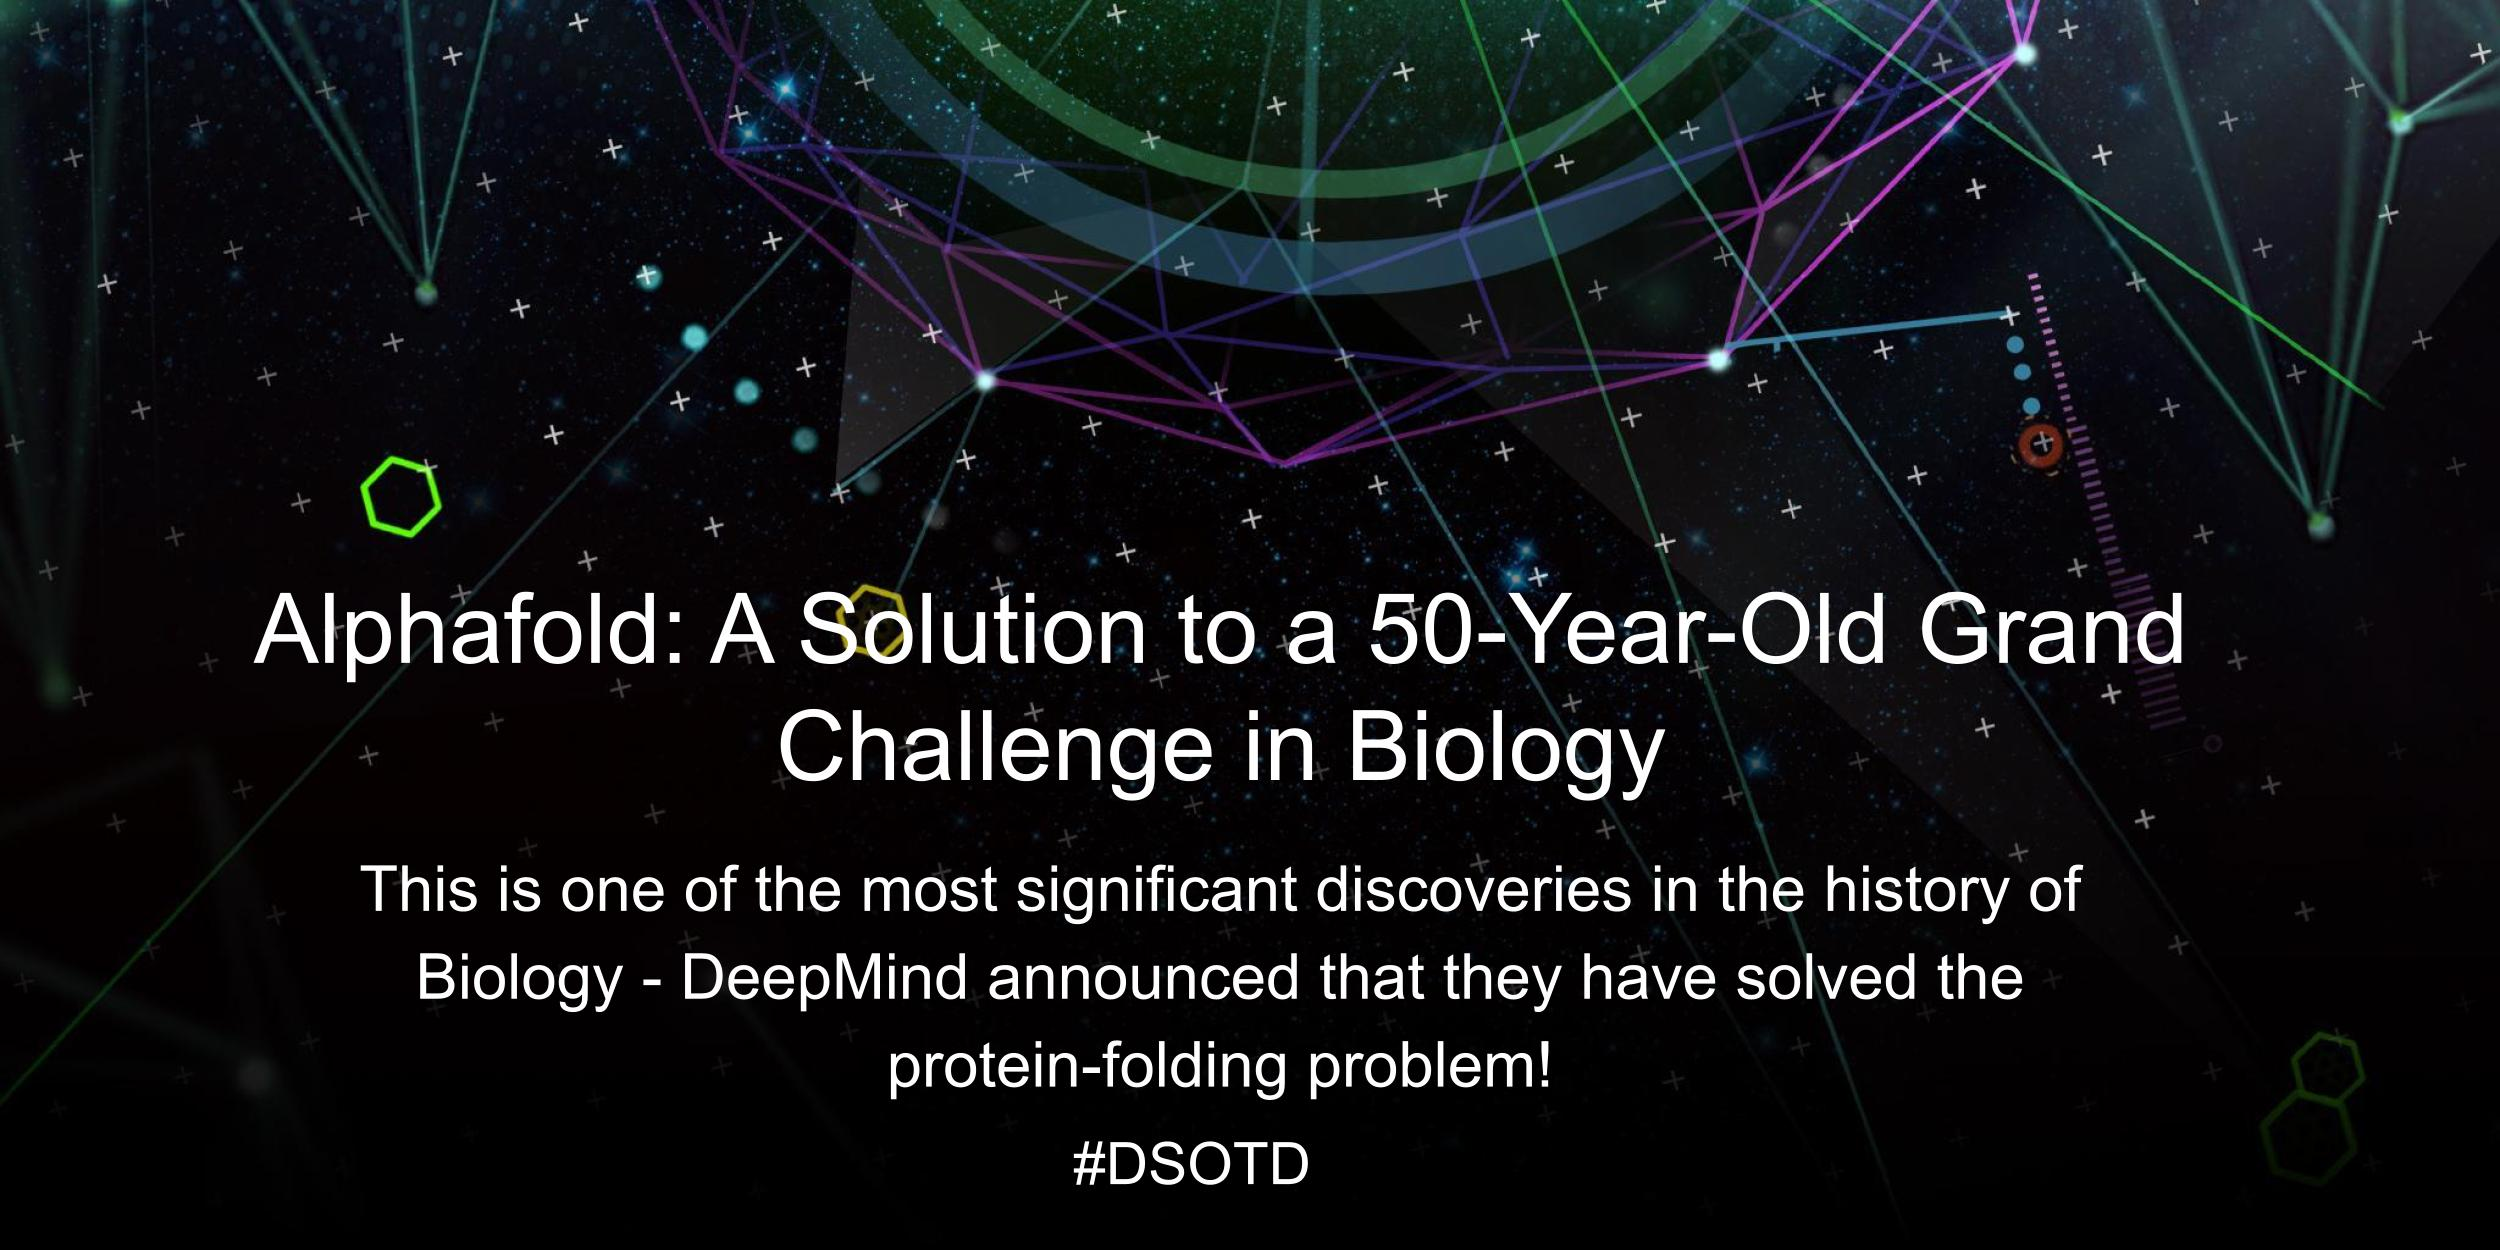 This is one of the most significant discoveries in the history of Biology - DeepMind announced that they have solved the protein-folding problem!